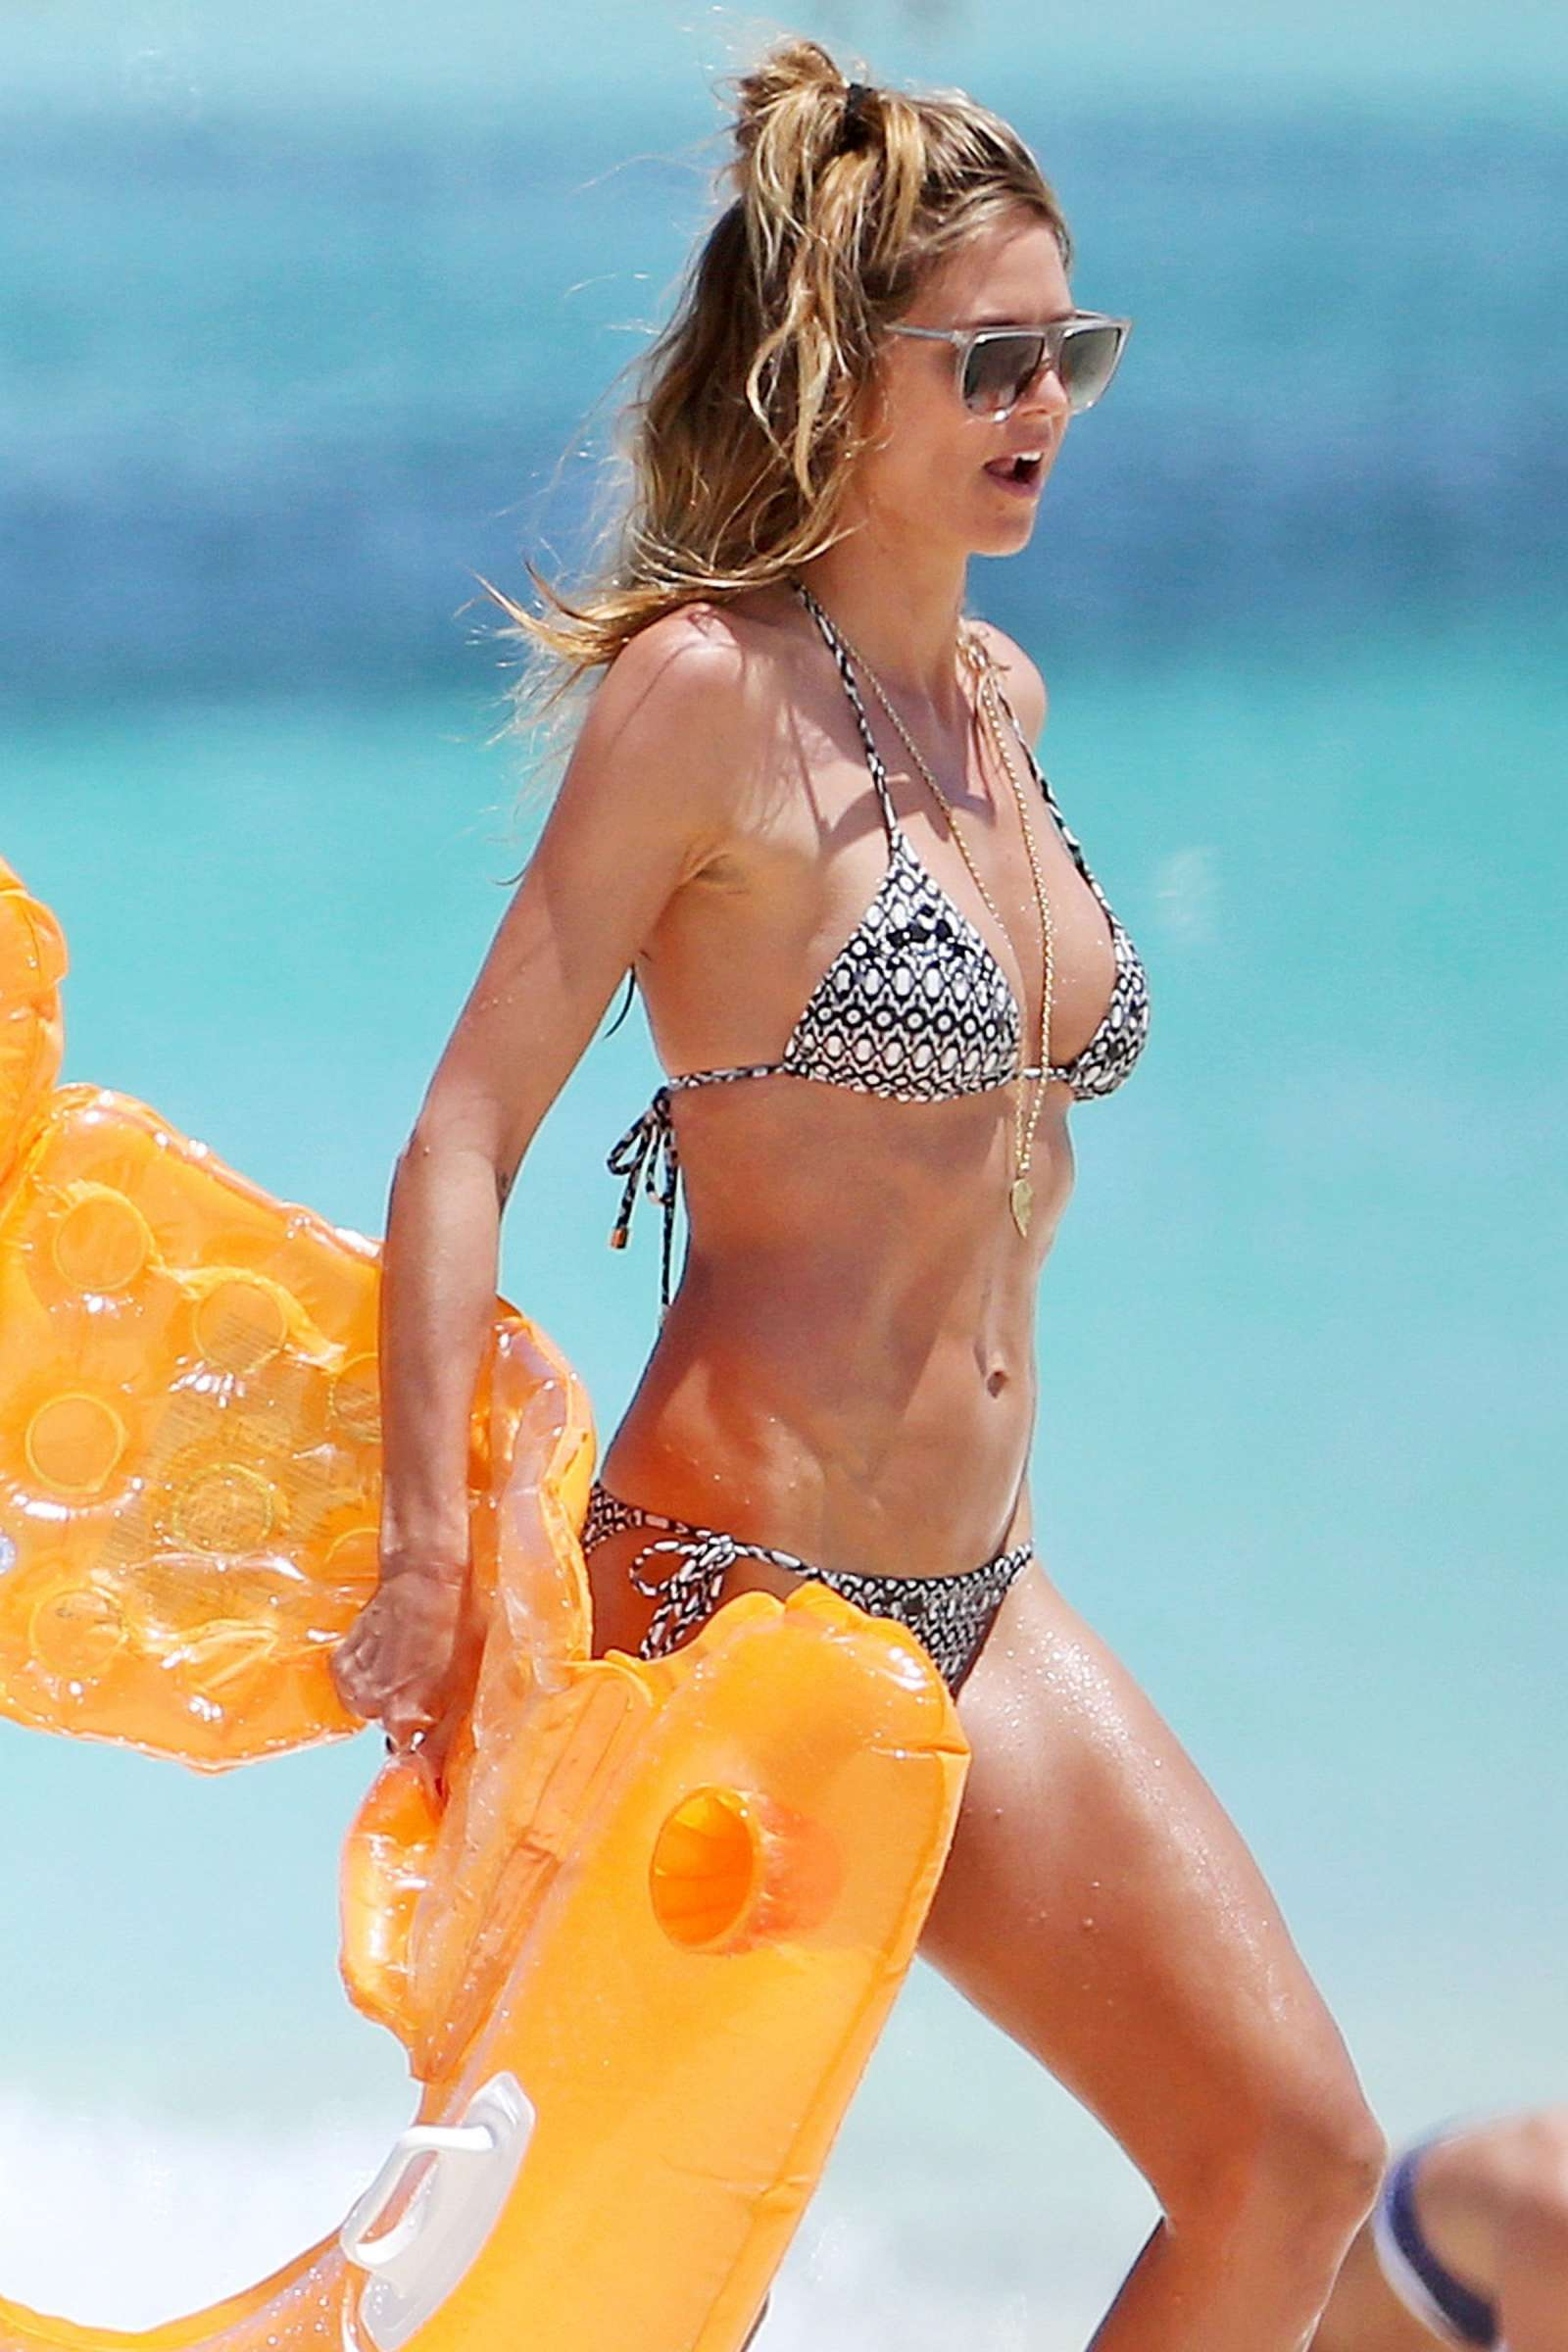 heidi klum wearing bikini in turks and caicon indian girls villa celebs beauty fashion. Black Bedroom Furniture Sets. Home Design Ideas